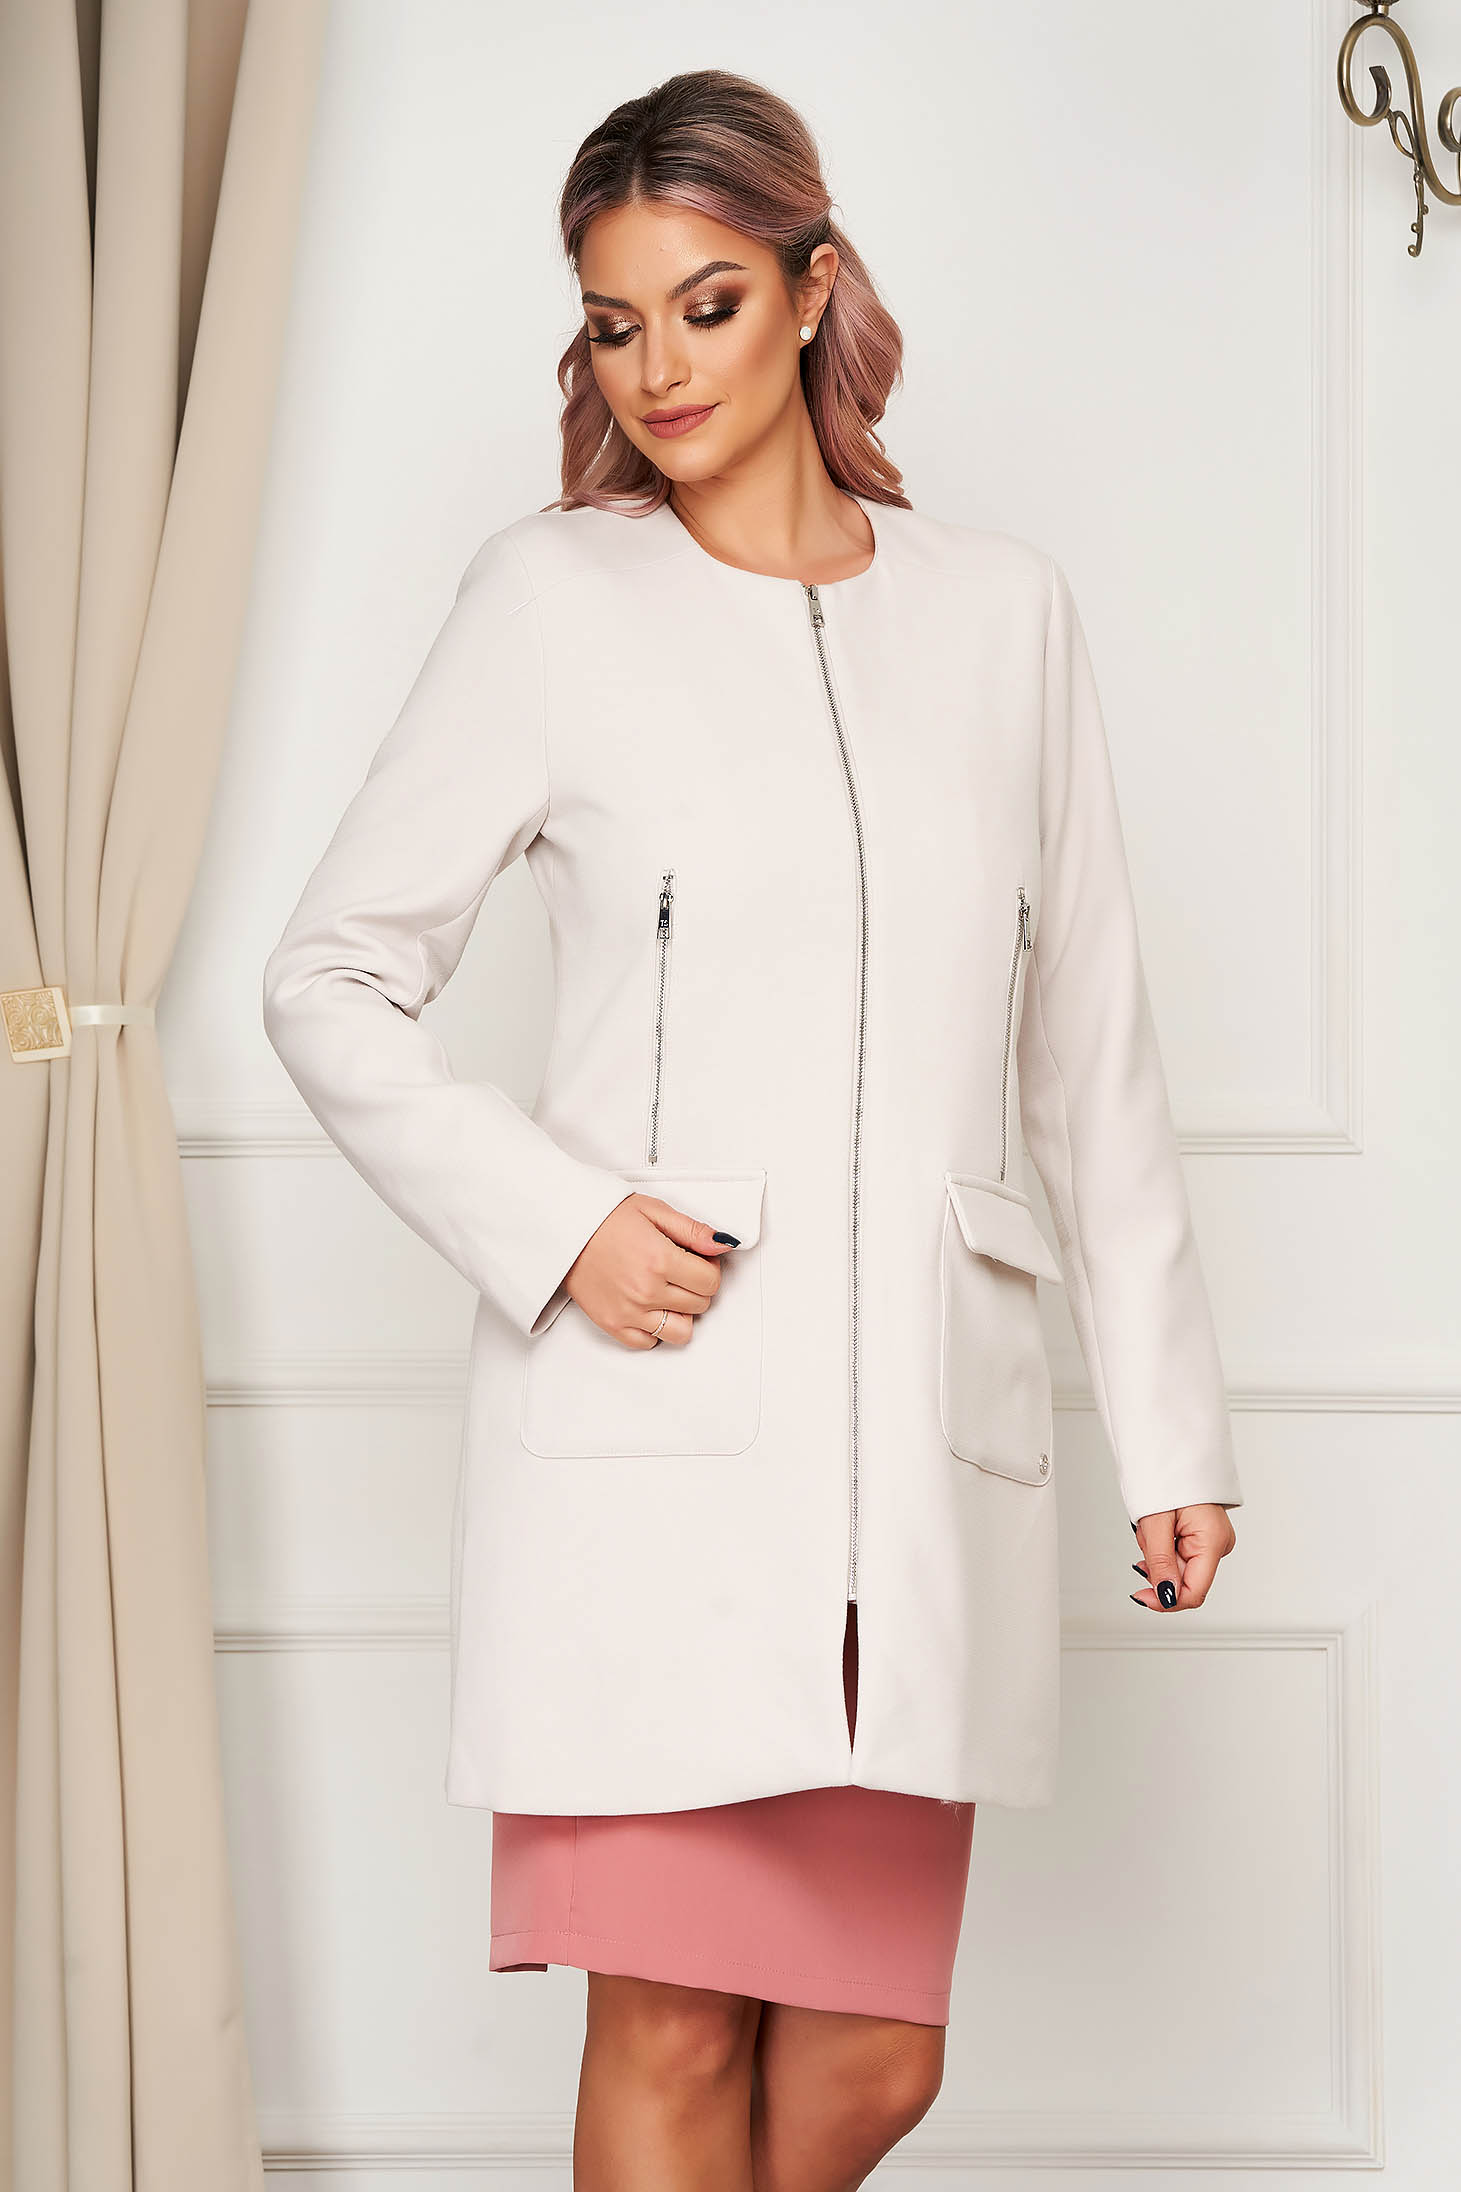 White coat casual with pockets zipper accessory